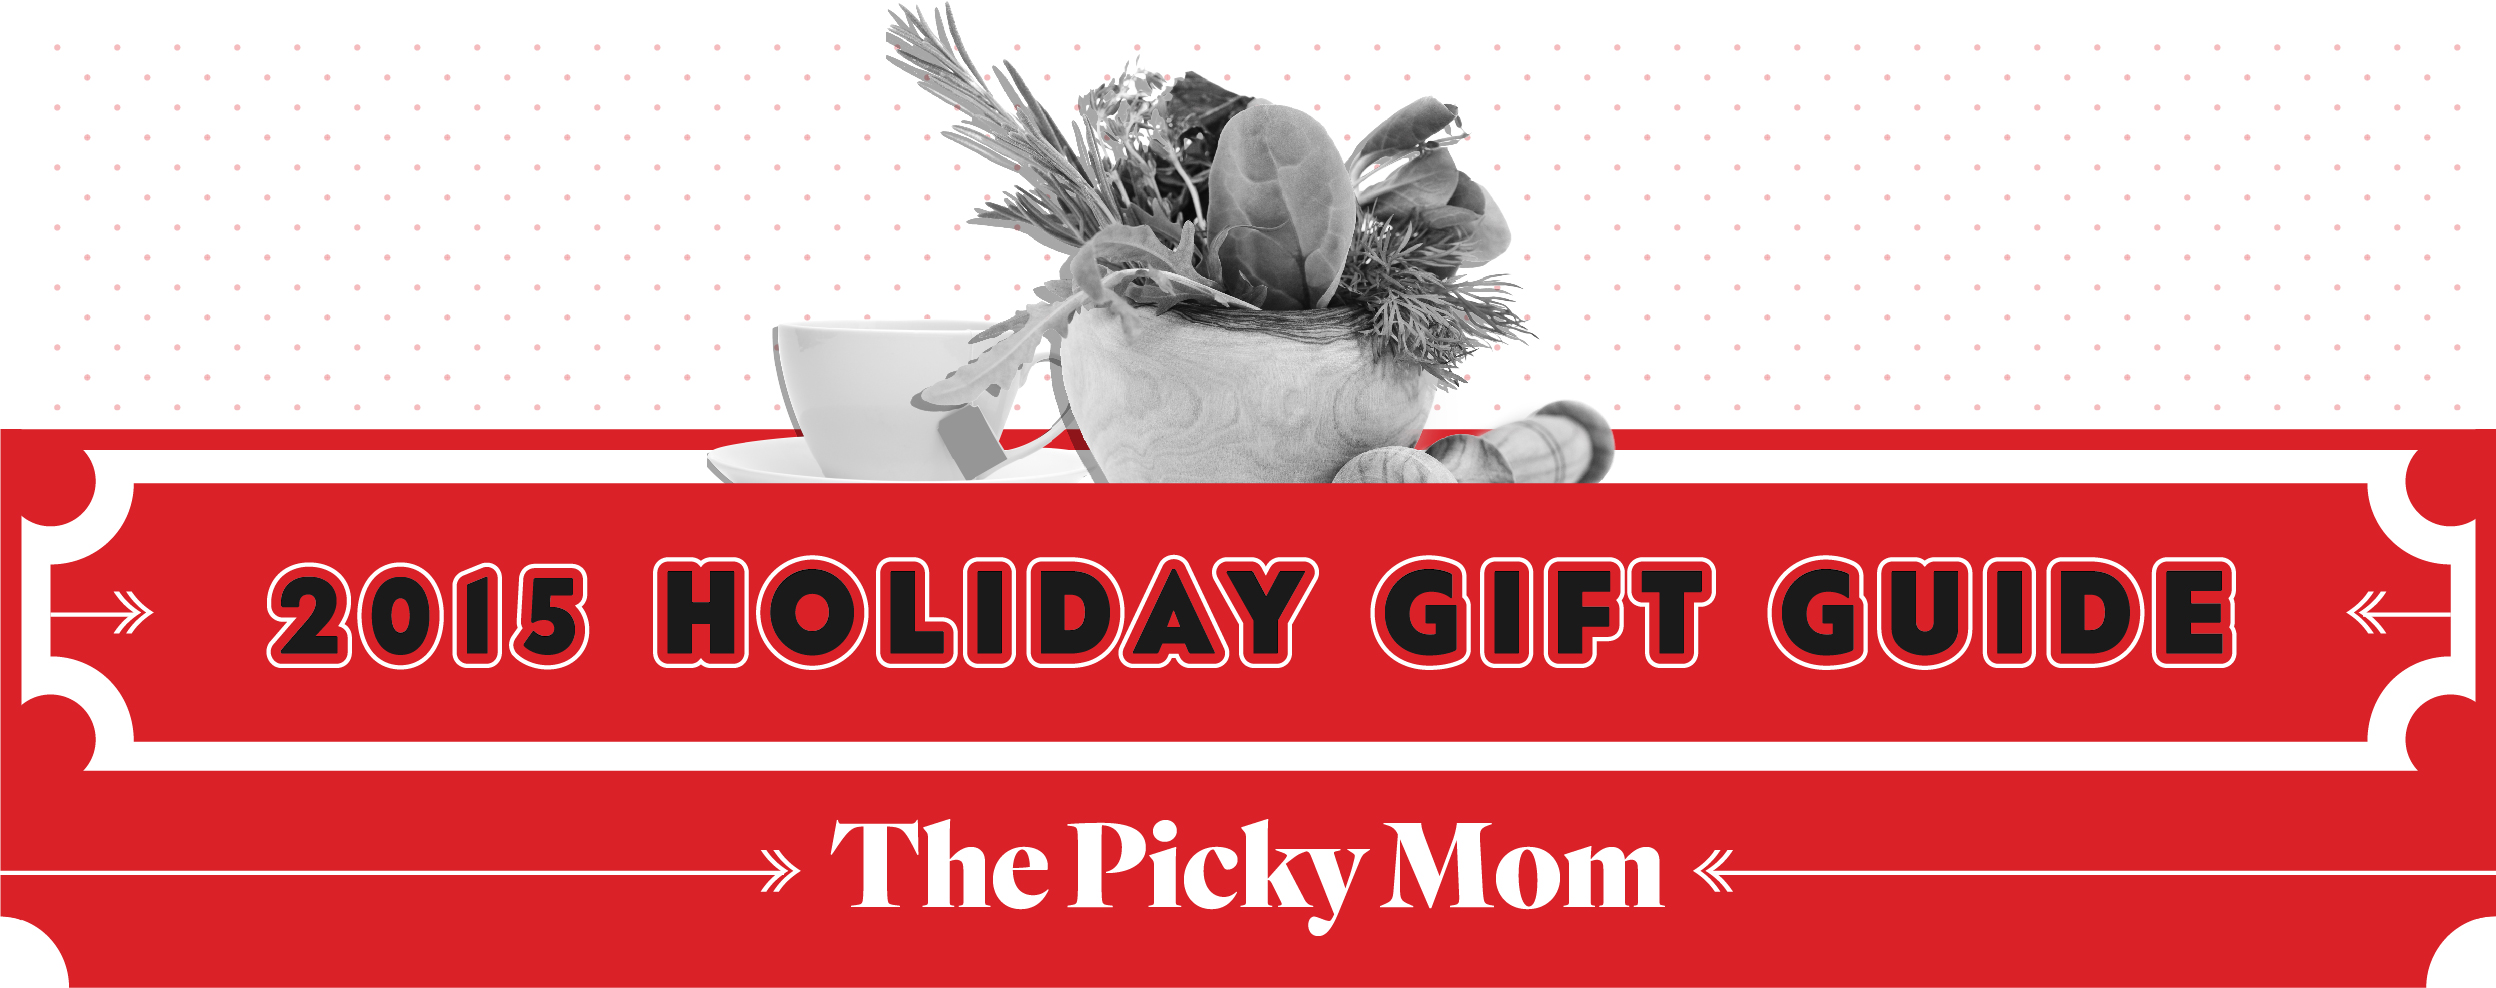 Holiday Gift Guide 2015 What To Get A Picky Mom